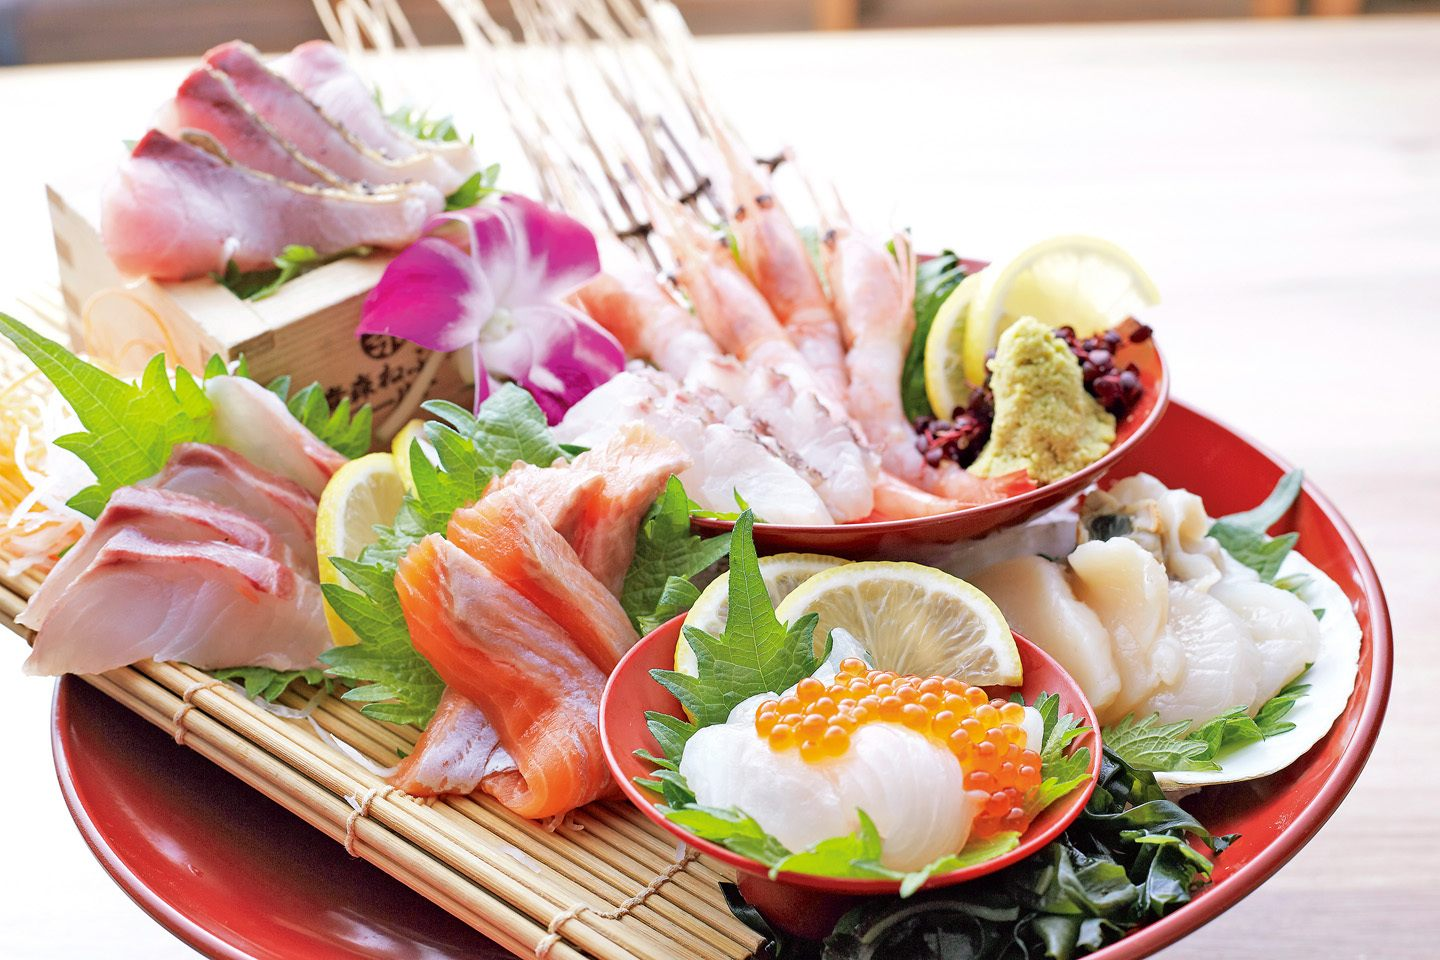 Plenty of fresh and high-quality seafood